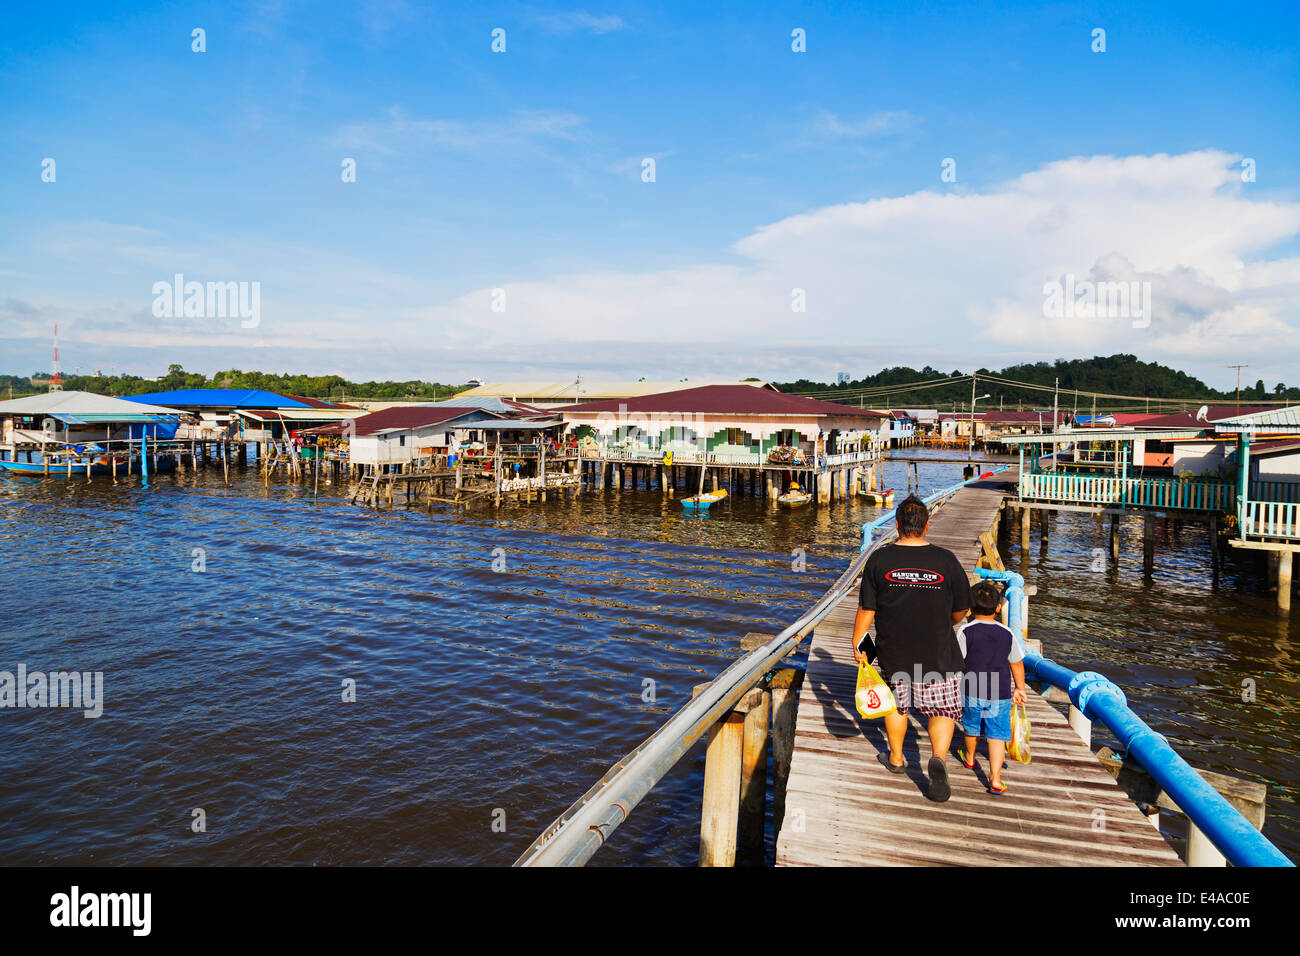 South East Asia, Kingdom of Brunei, Bandar Seri Begawan, Kampung Ayer water village - Stock Image